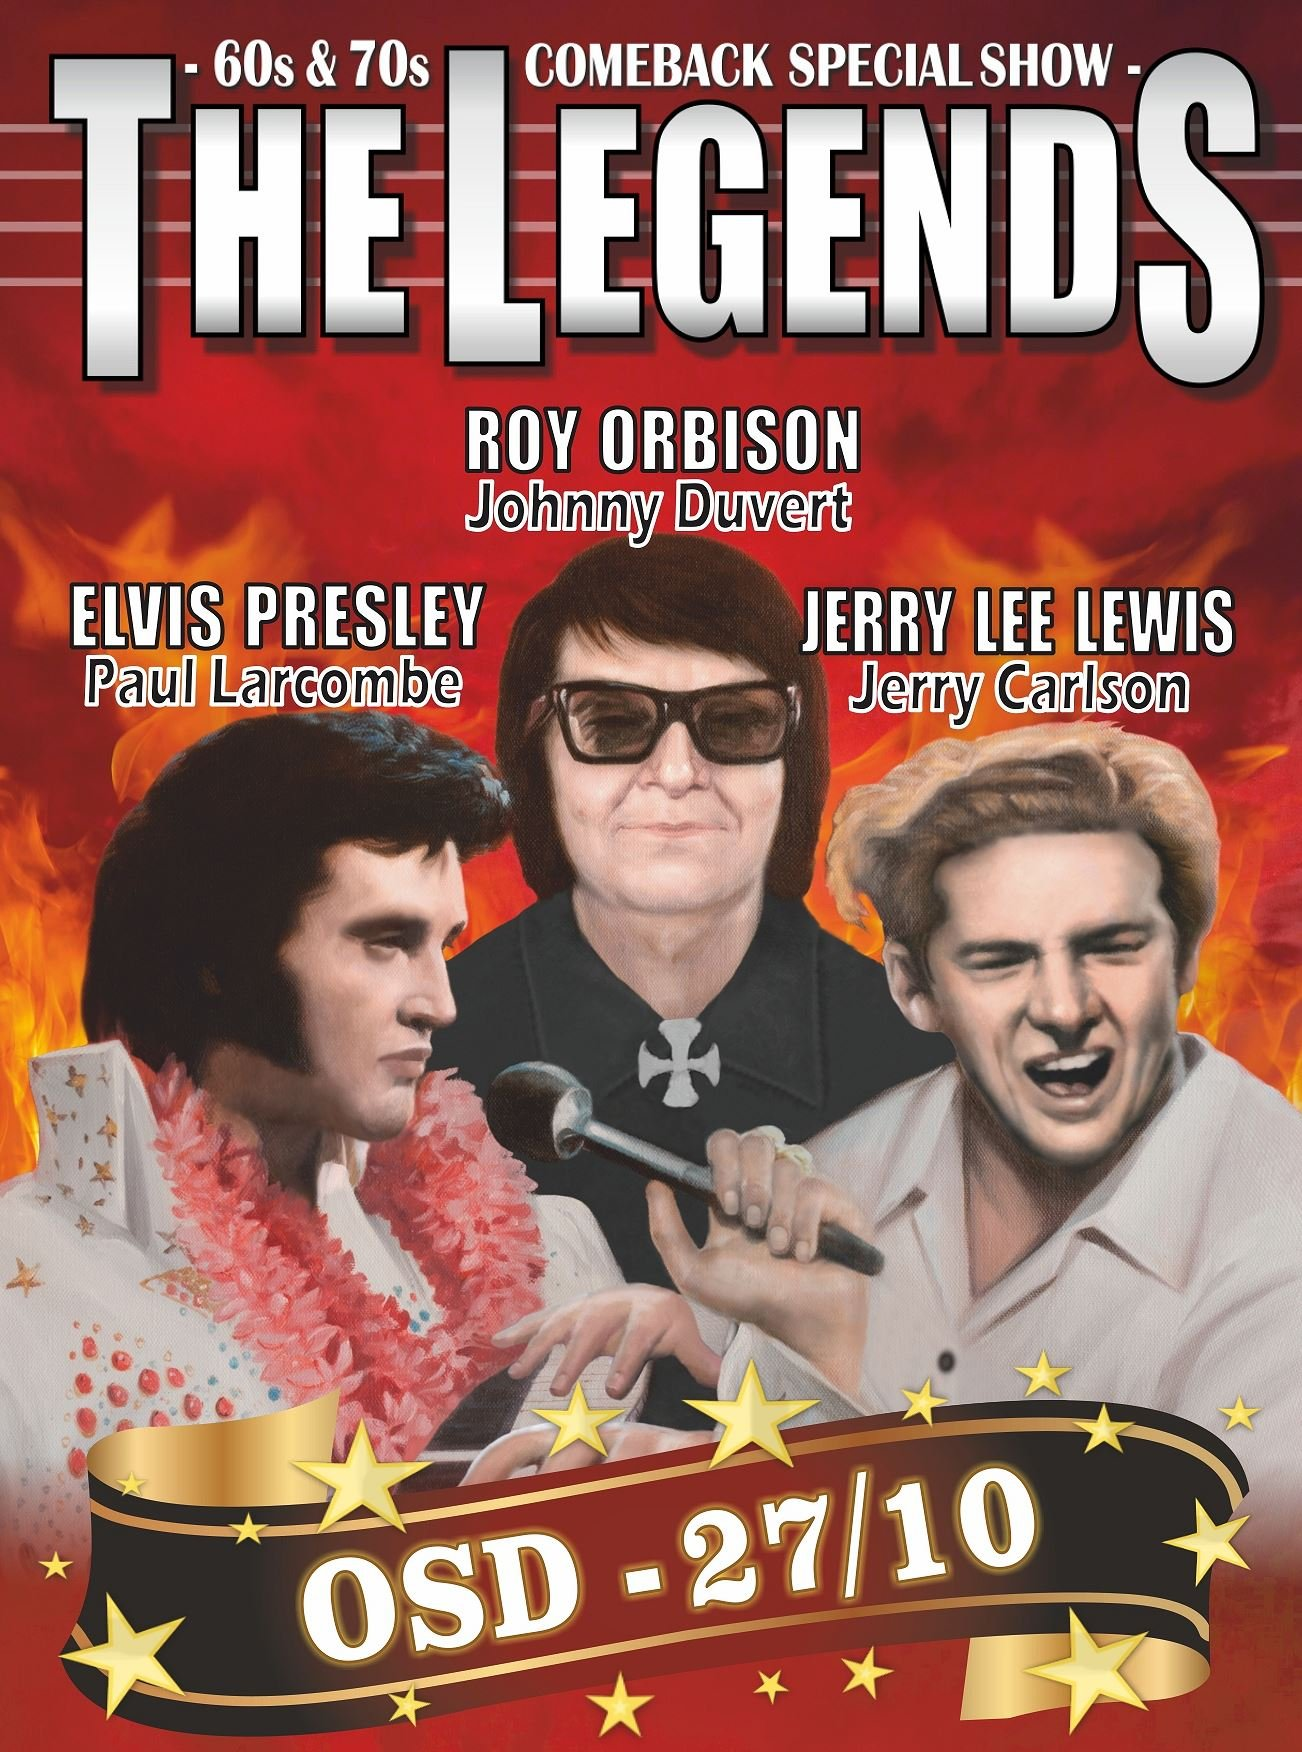 Foto: The Legends,  © Copy: The Legends, THE LEGENDS - 60s & 70s Comeback Special